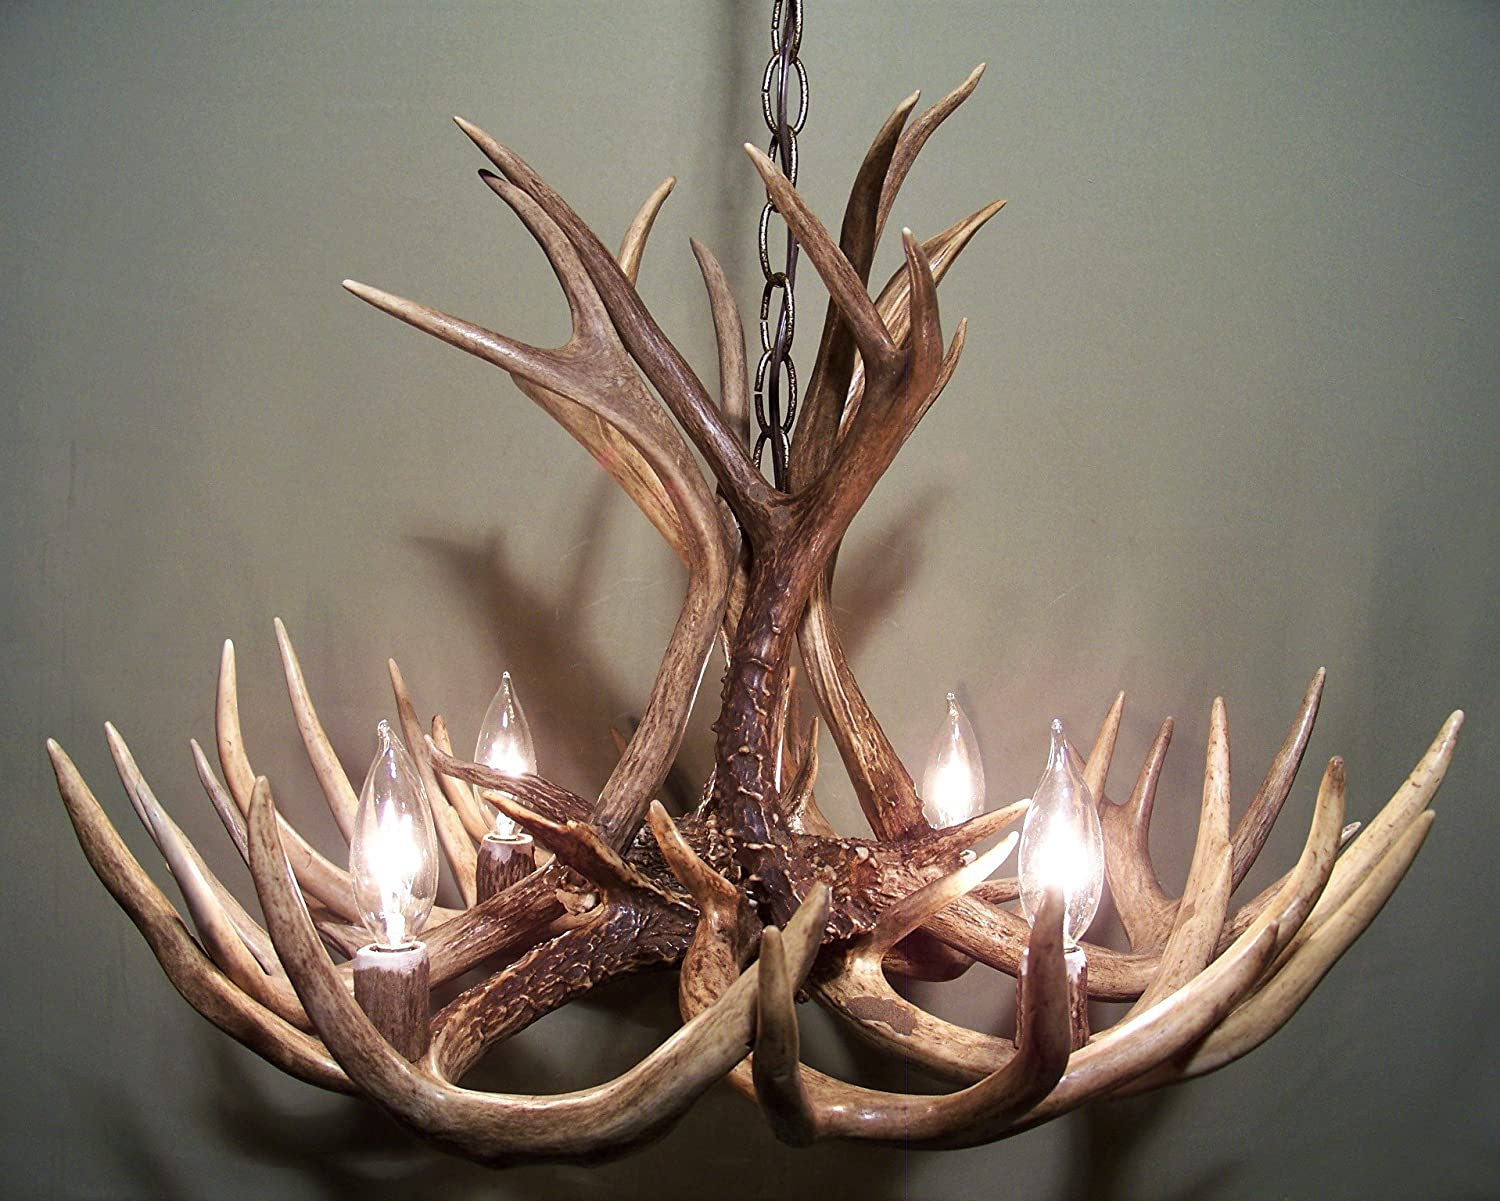 Amazon real antler chandelier whitetail mule deer combo amazon real antler chandelier whitetail mule deer combo 12 antlers 4 lights shed antler art elk covered sockets handmade 23wide x 16 tall arubaitofo Choice Image